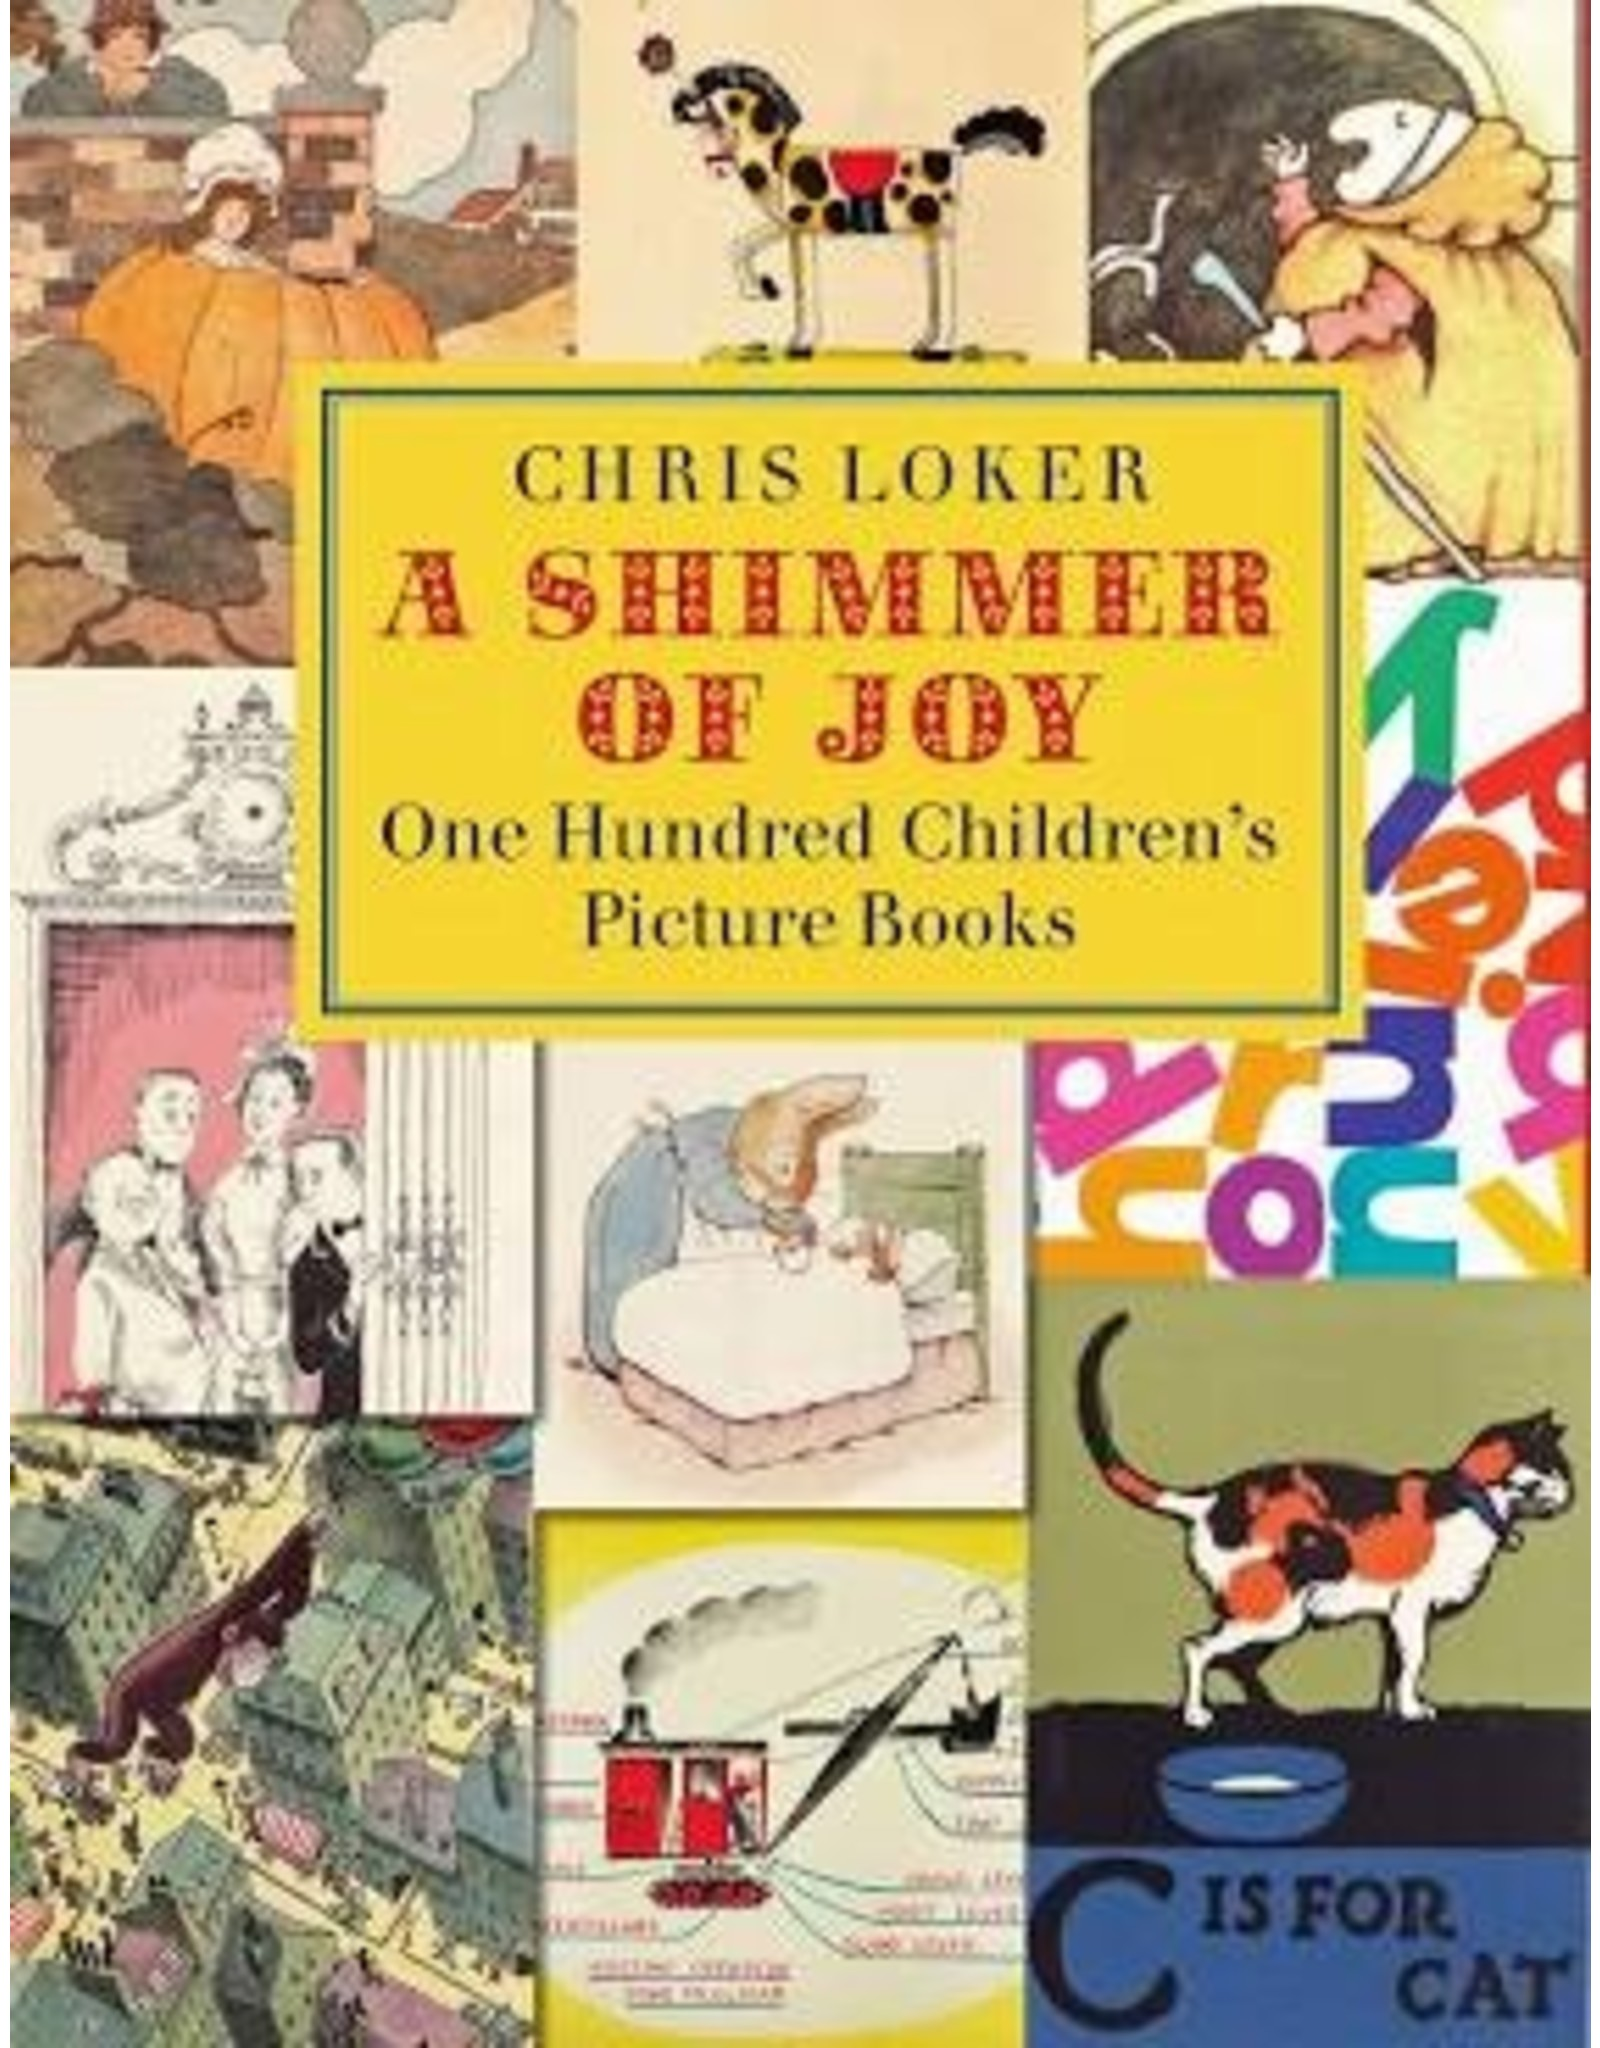 Books A Shimmer of Joy : One Hundred Children's Picture Books by Chris Loker (Holiday Catalog)